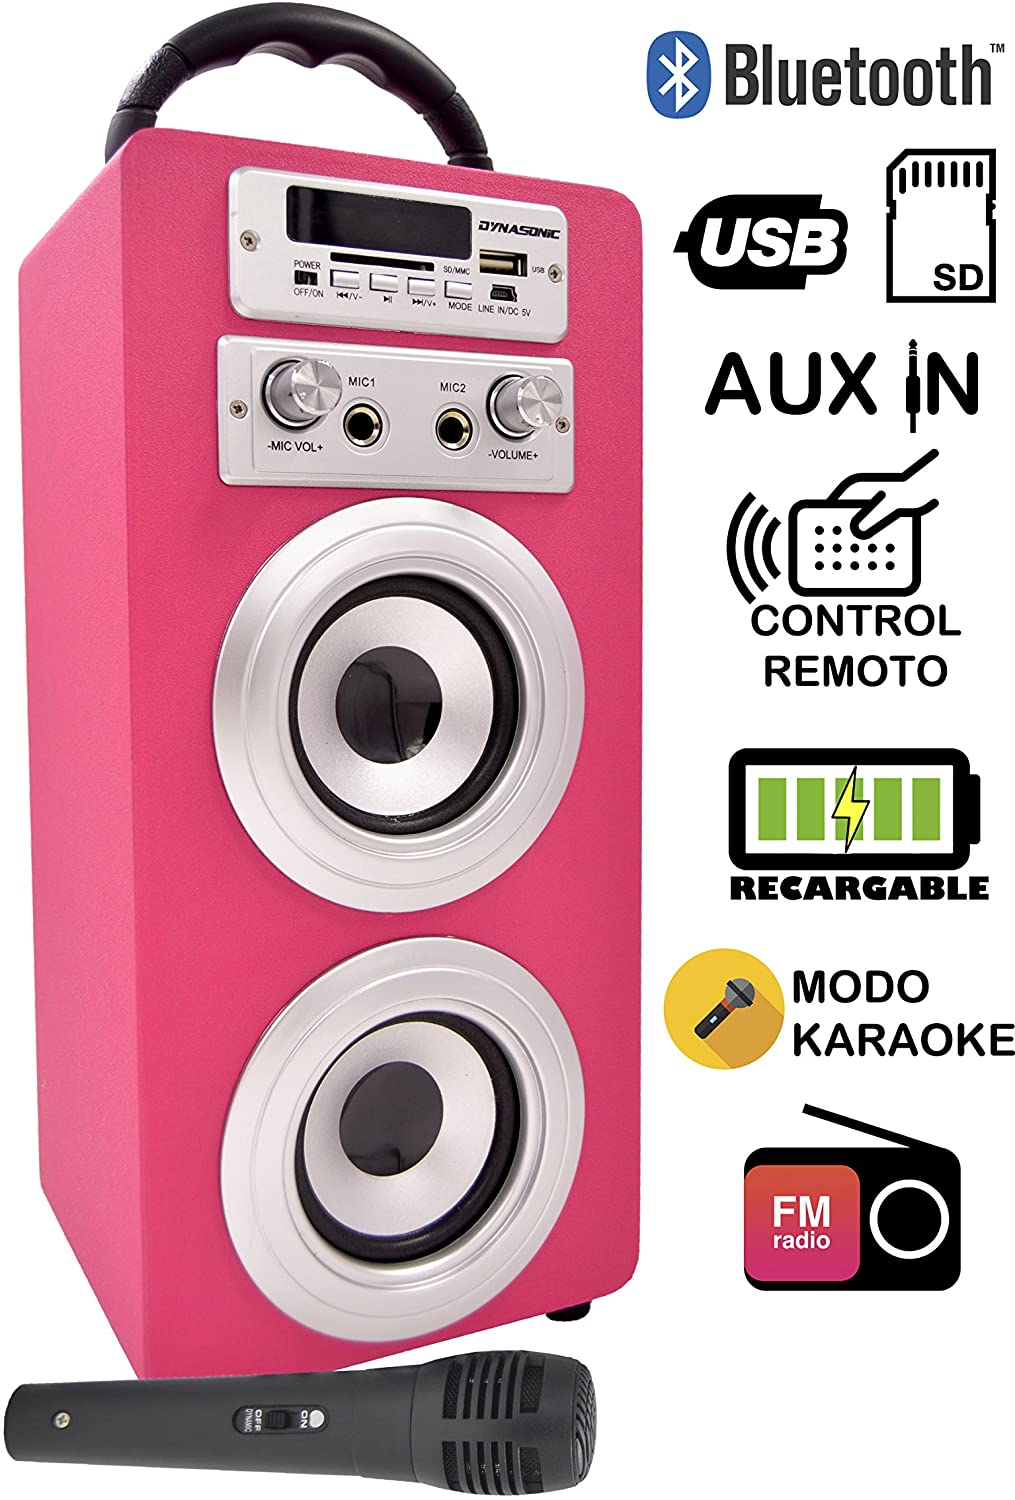 DYNASONIC - Altavoz Karaoke Bluetooth 10W, Color Rosa | Reproductor mp3 inalámbrico portátil, Lector USB SD, Radio FM